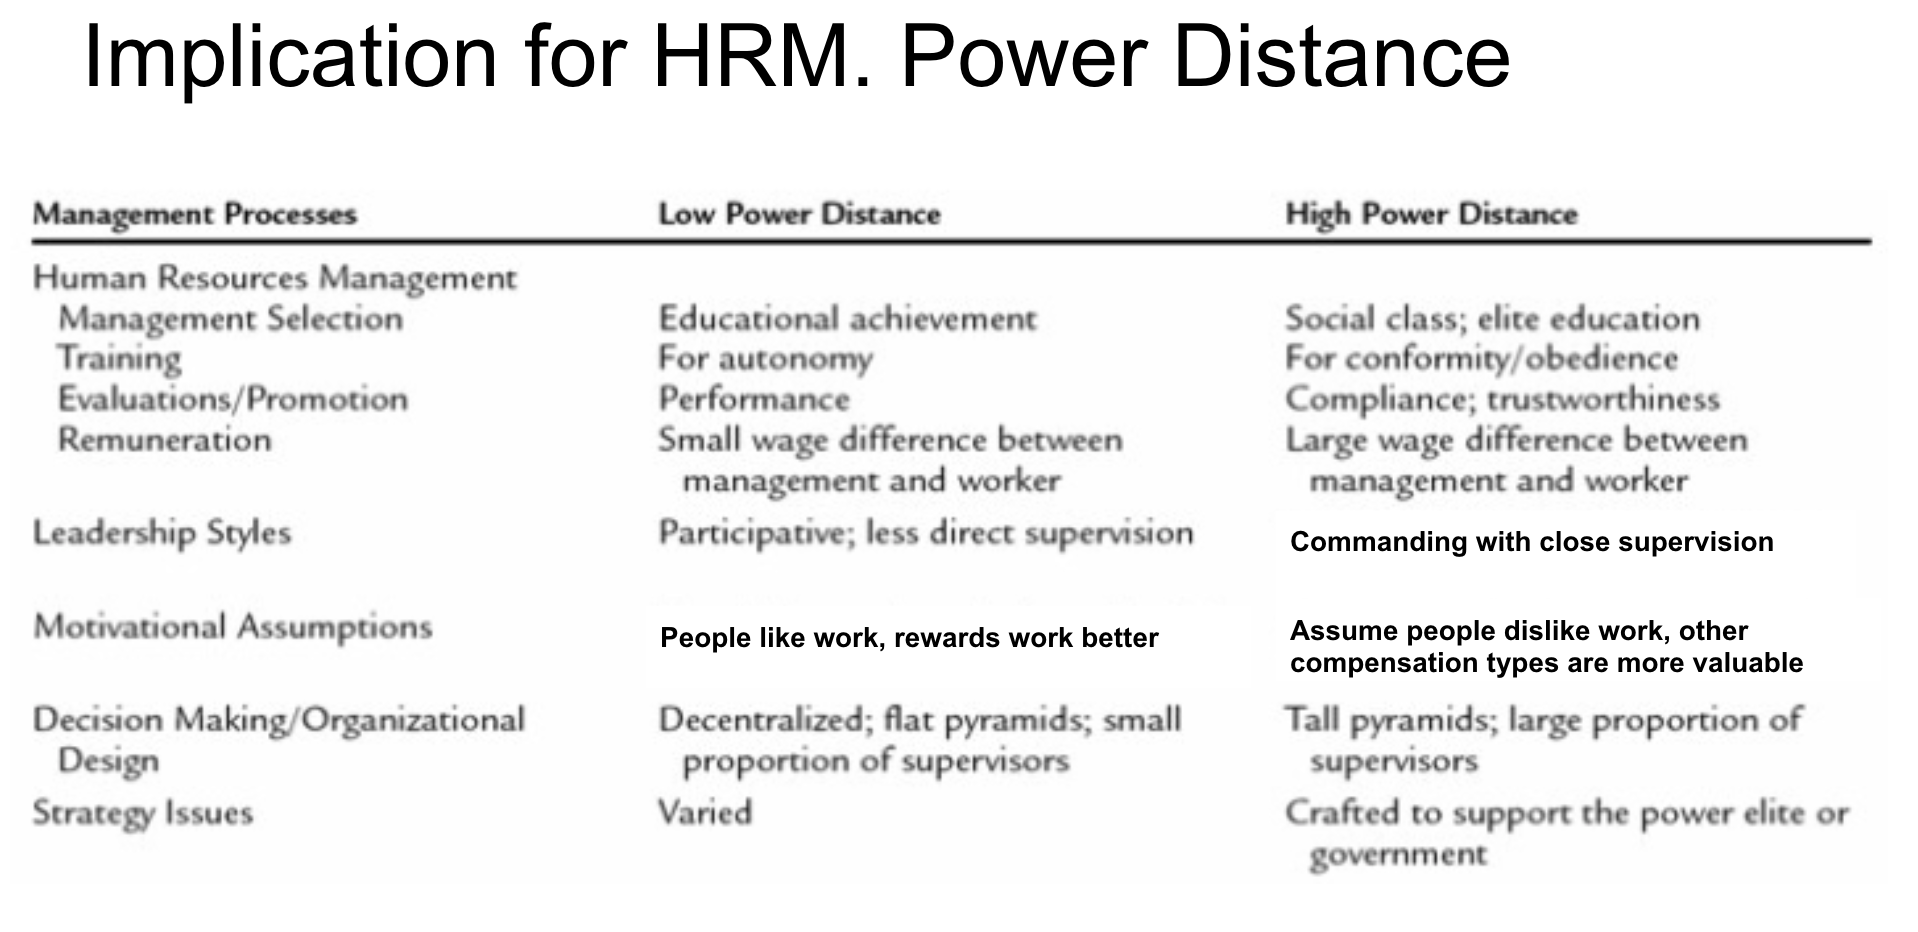 HRm and Power distance